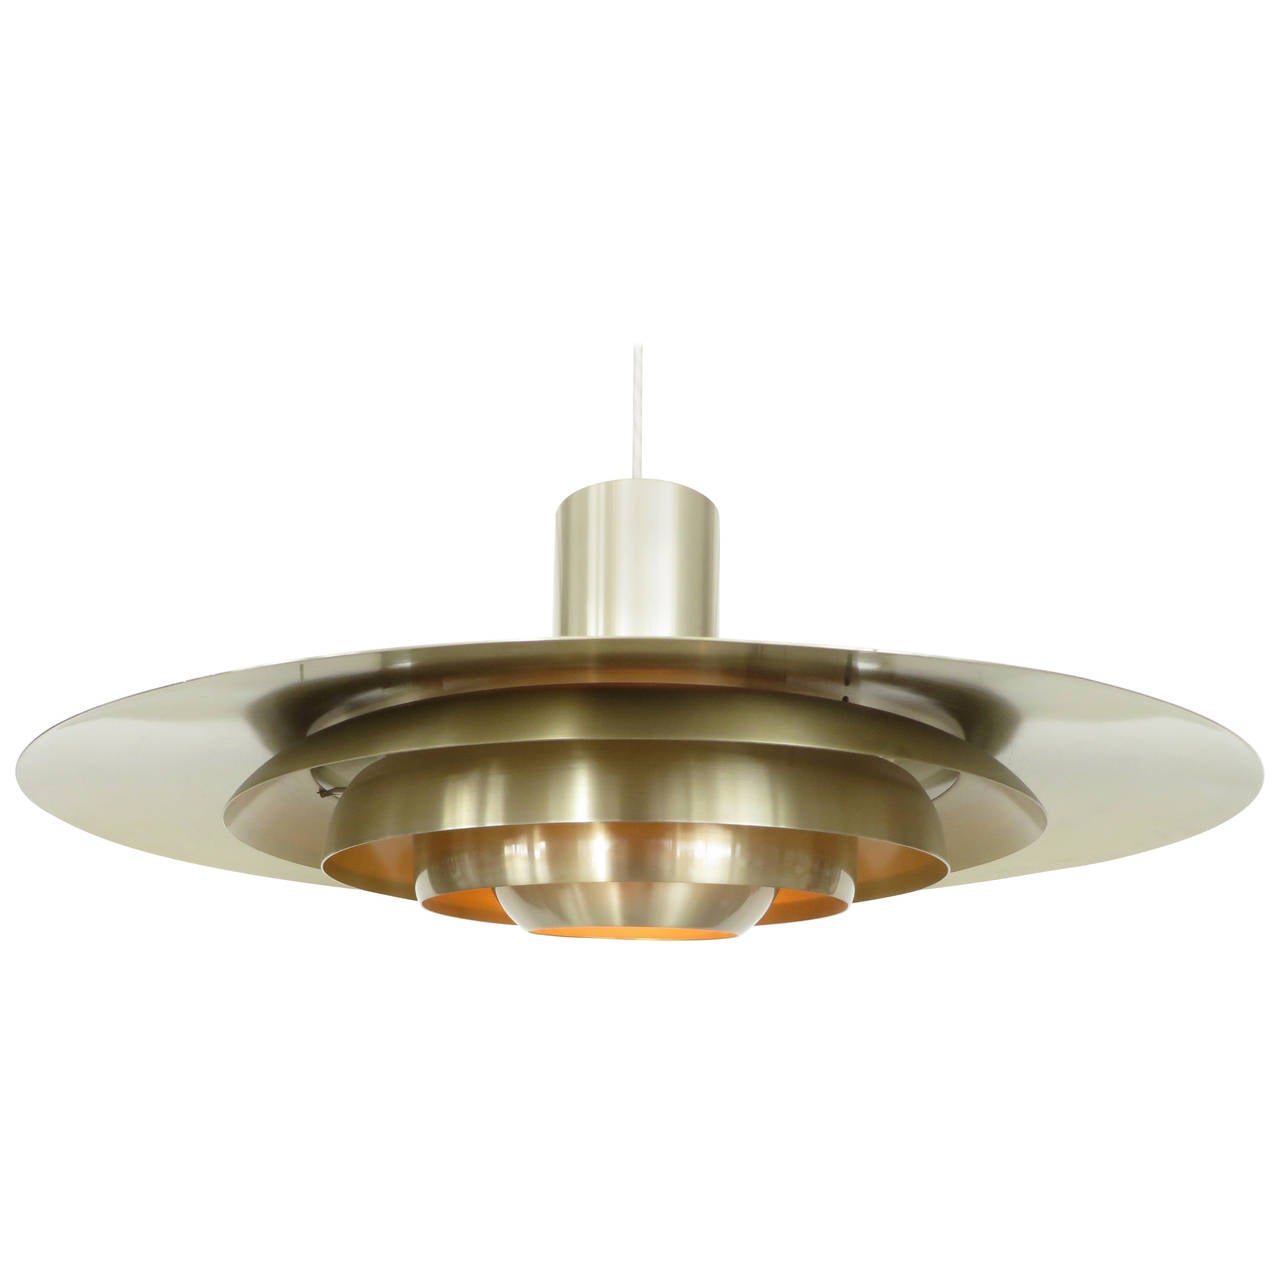 Chandelier Extra Large Ceiling Light By Preben Fabricius And J Rgen Kastholm